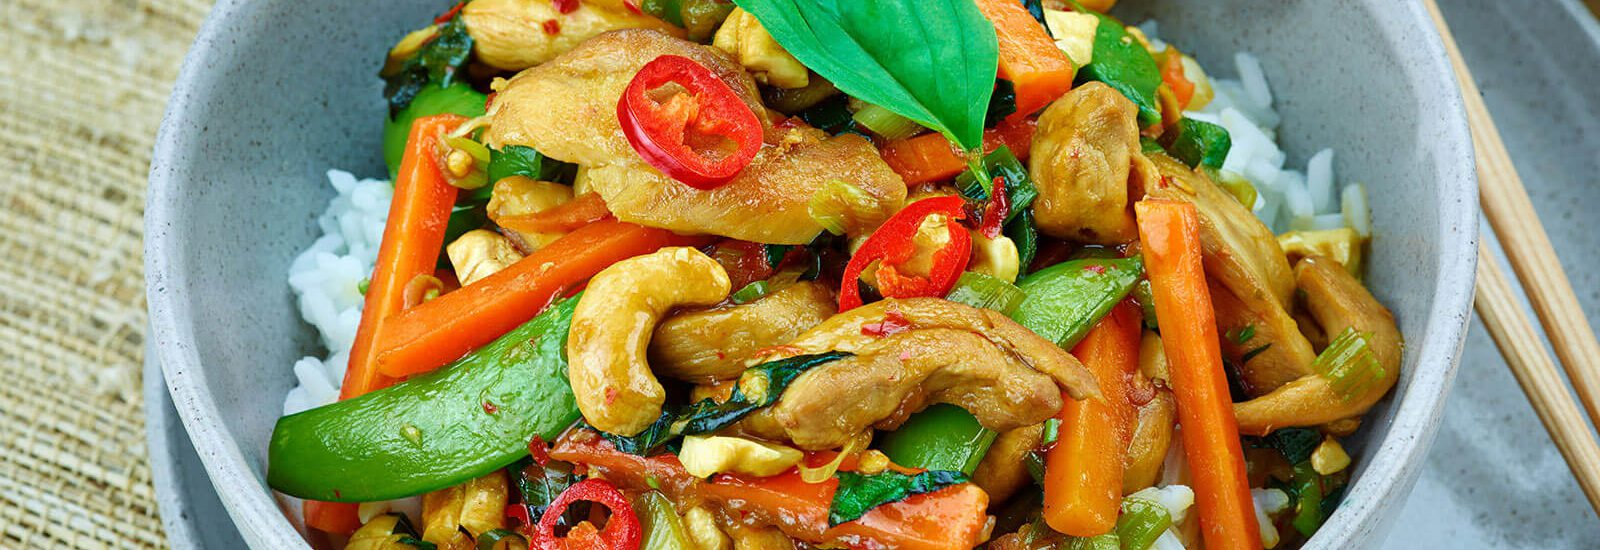 Chicken_chilli_and_basil_stir_fry